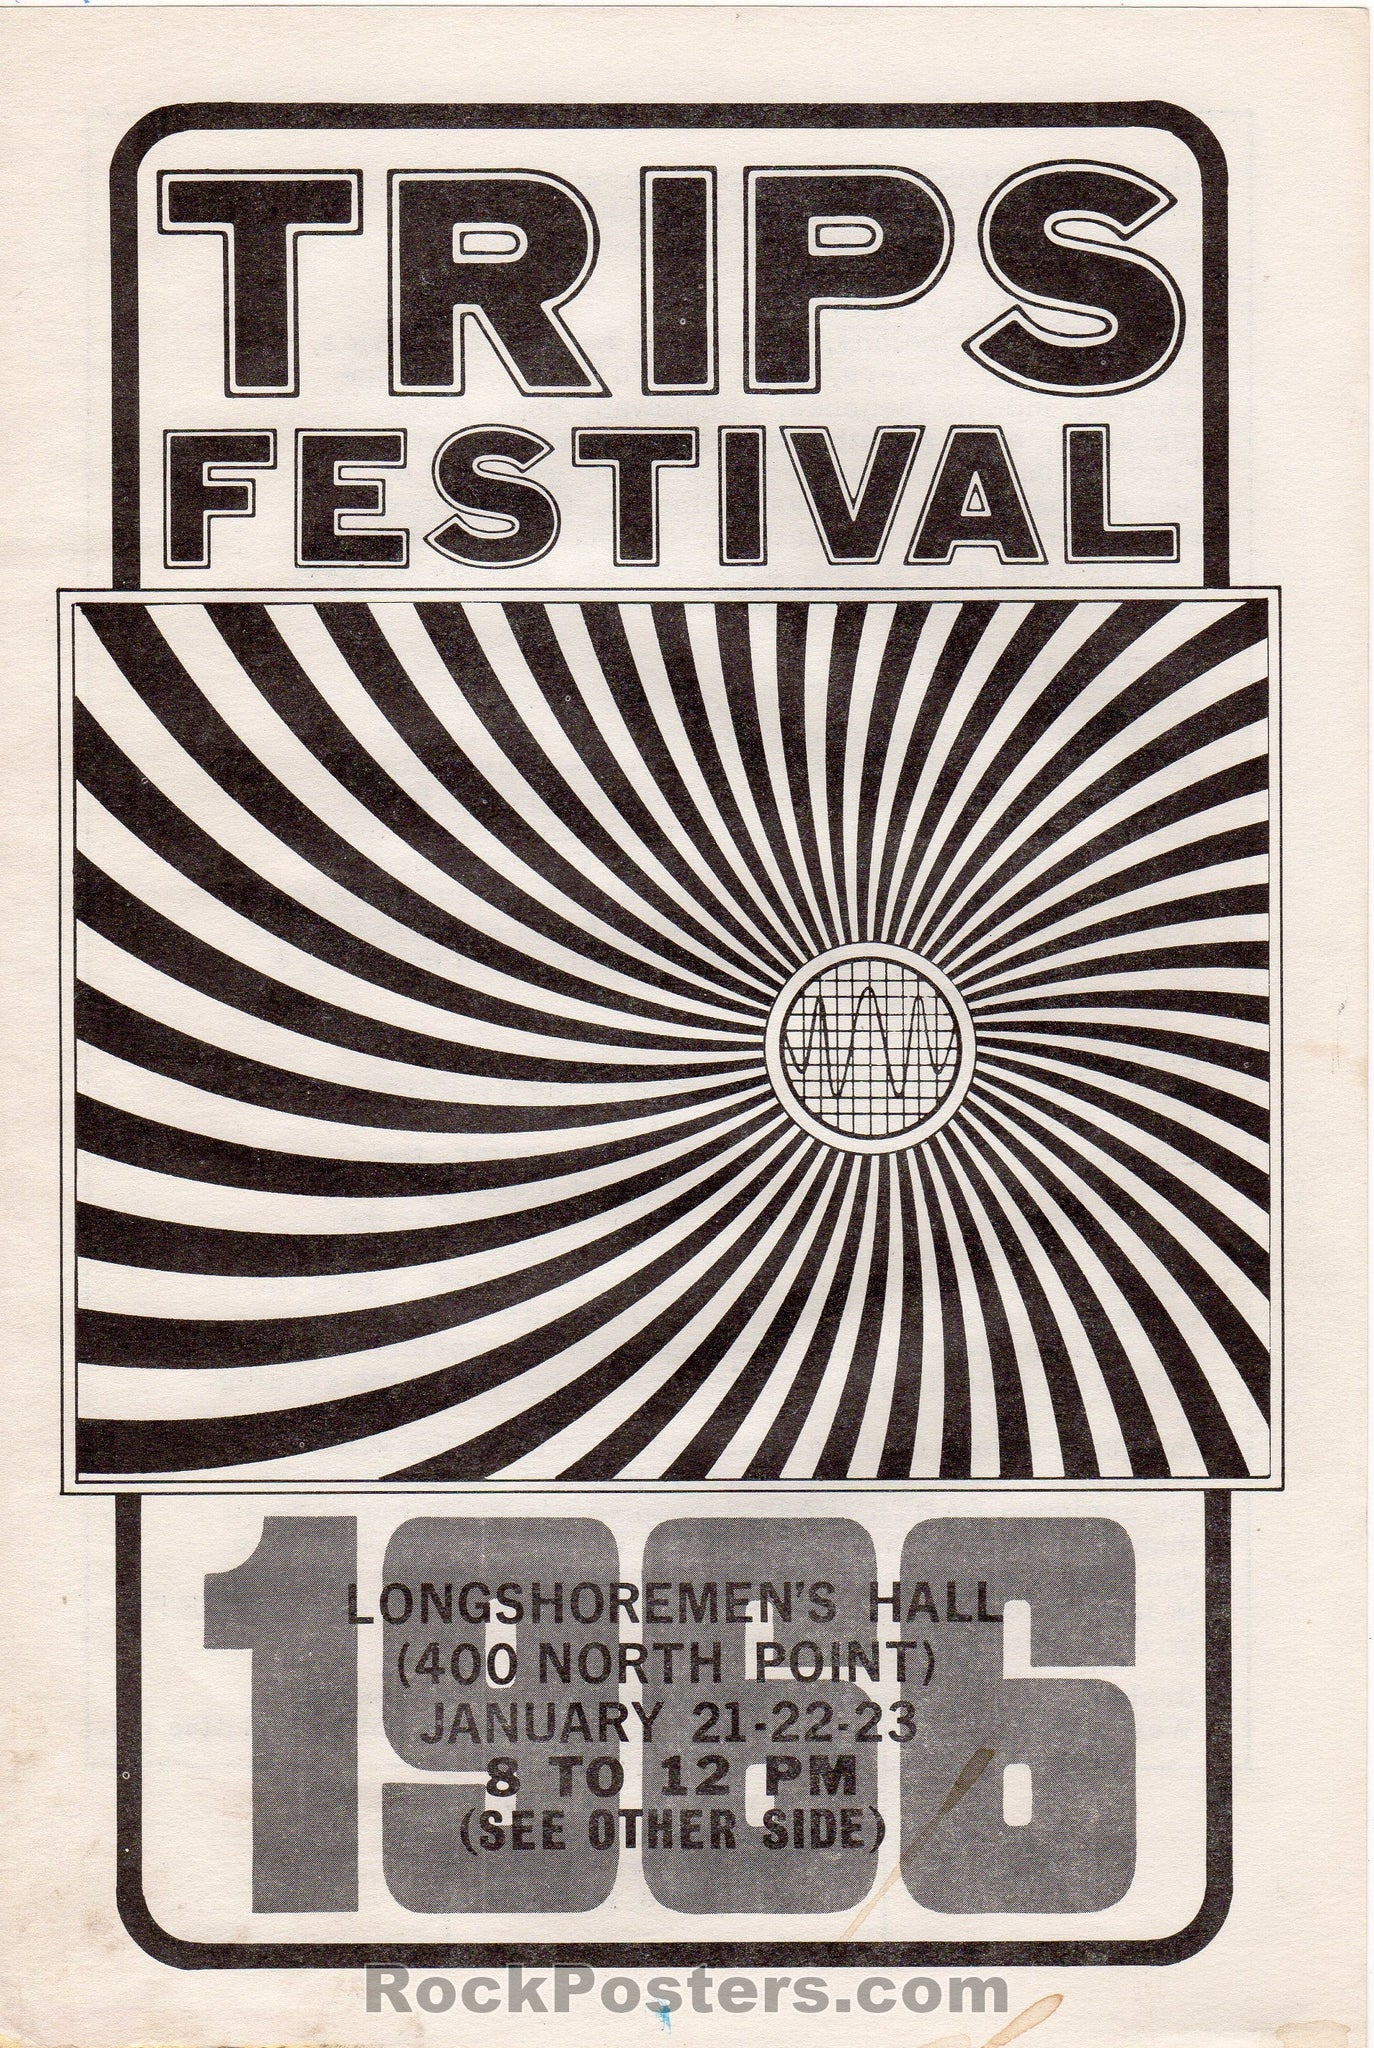 AUCTION - AOR 2.42 - LSD Trips Festival Grateful Dead Ken Kesey 2-Sided 1966 Handbill - Longshoremens Hall - Condition - Excellent